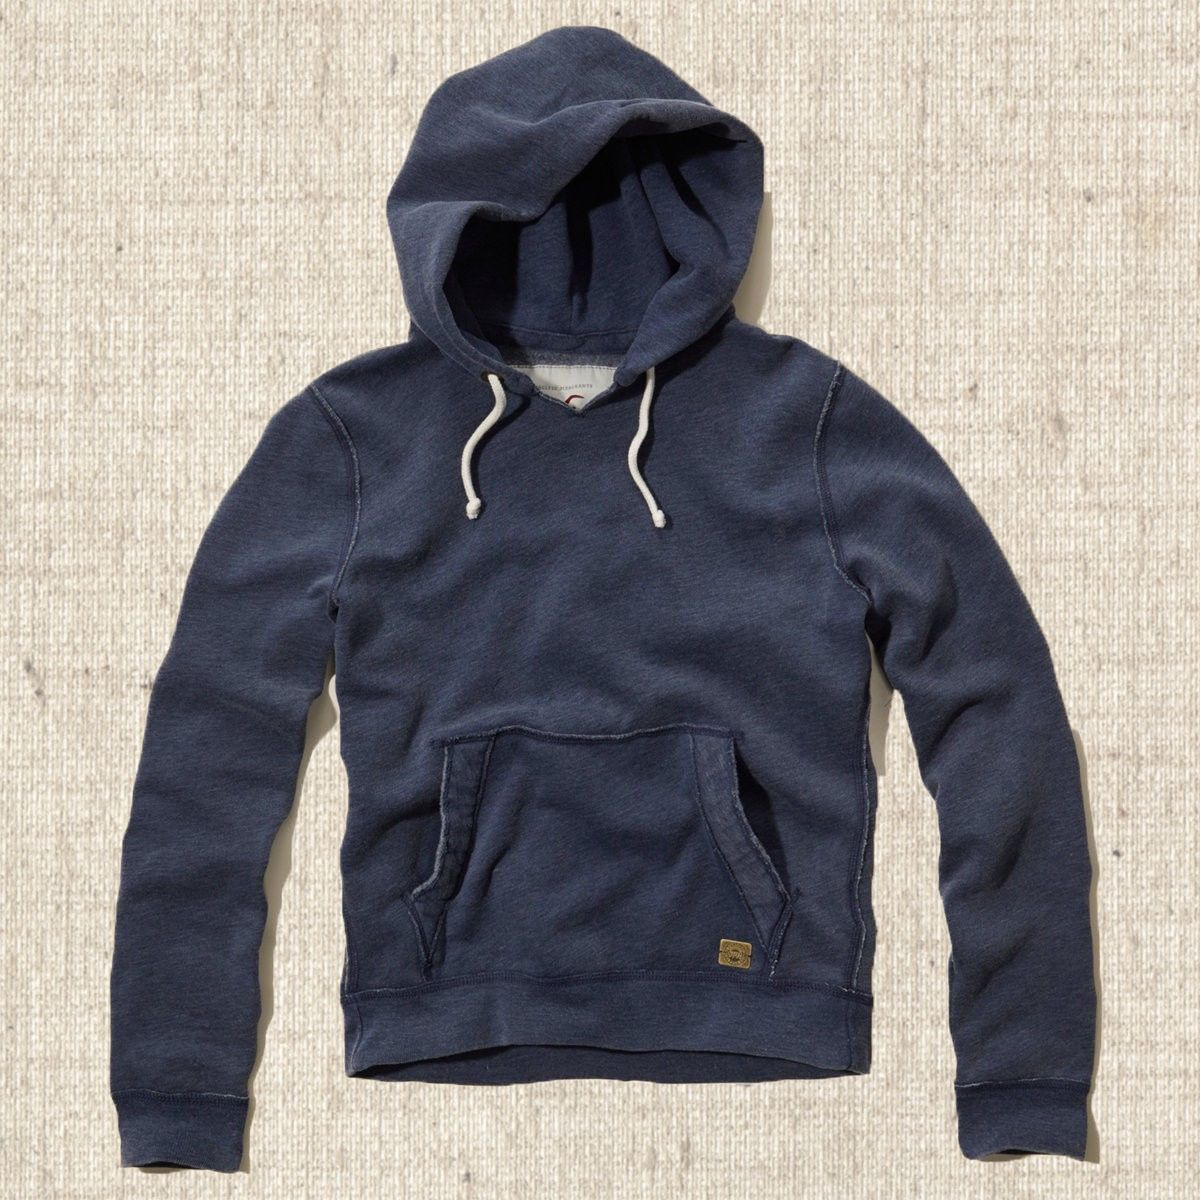 Hollister Sweaters Hollister Hoodies Hollister Shirts Hollister Jacket Hollister Pants Hollister Jeans: New Hollister Men's Guys First Point Hoodie Hoodie Size